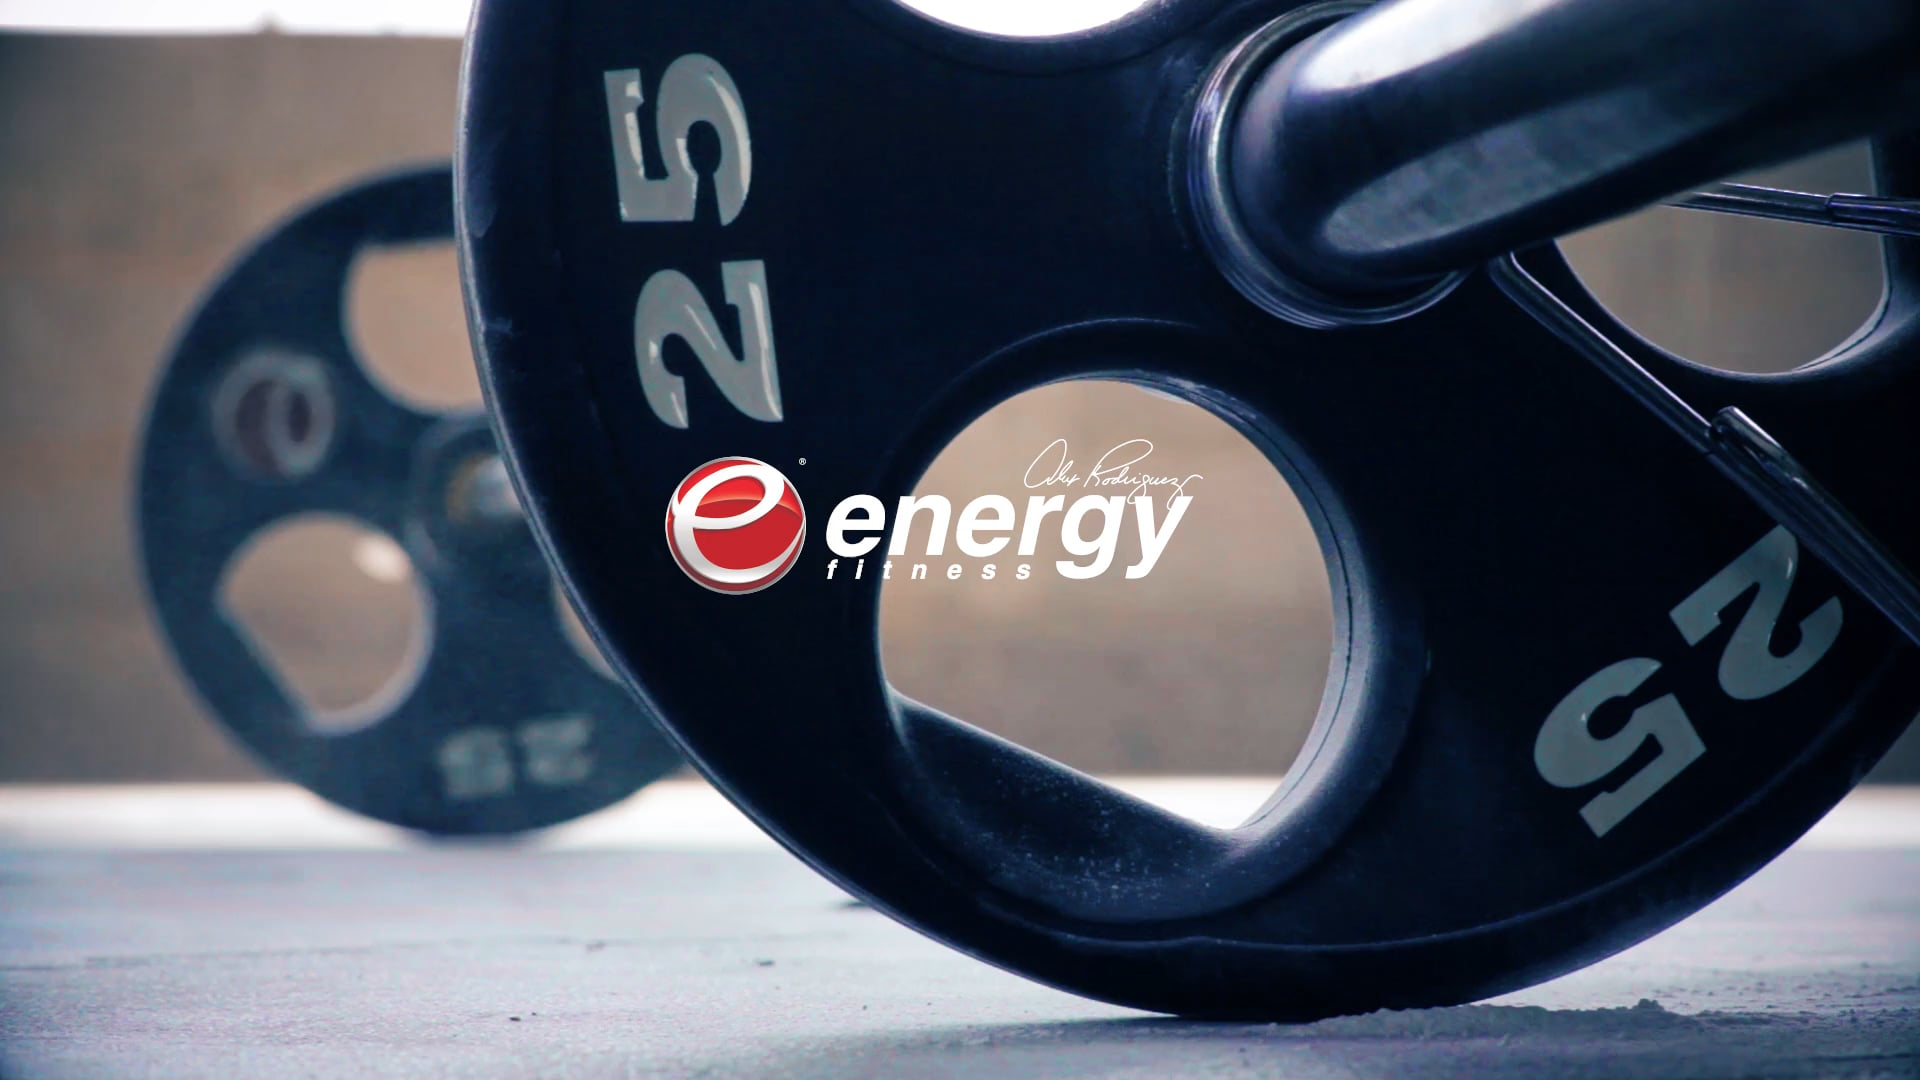 ENERGY FITNESS 2016: BARBELL WORKOUT